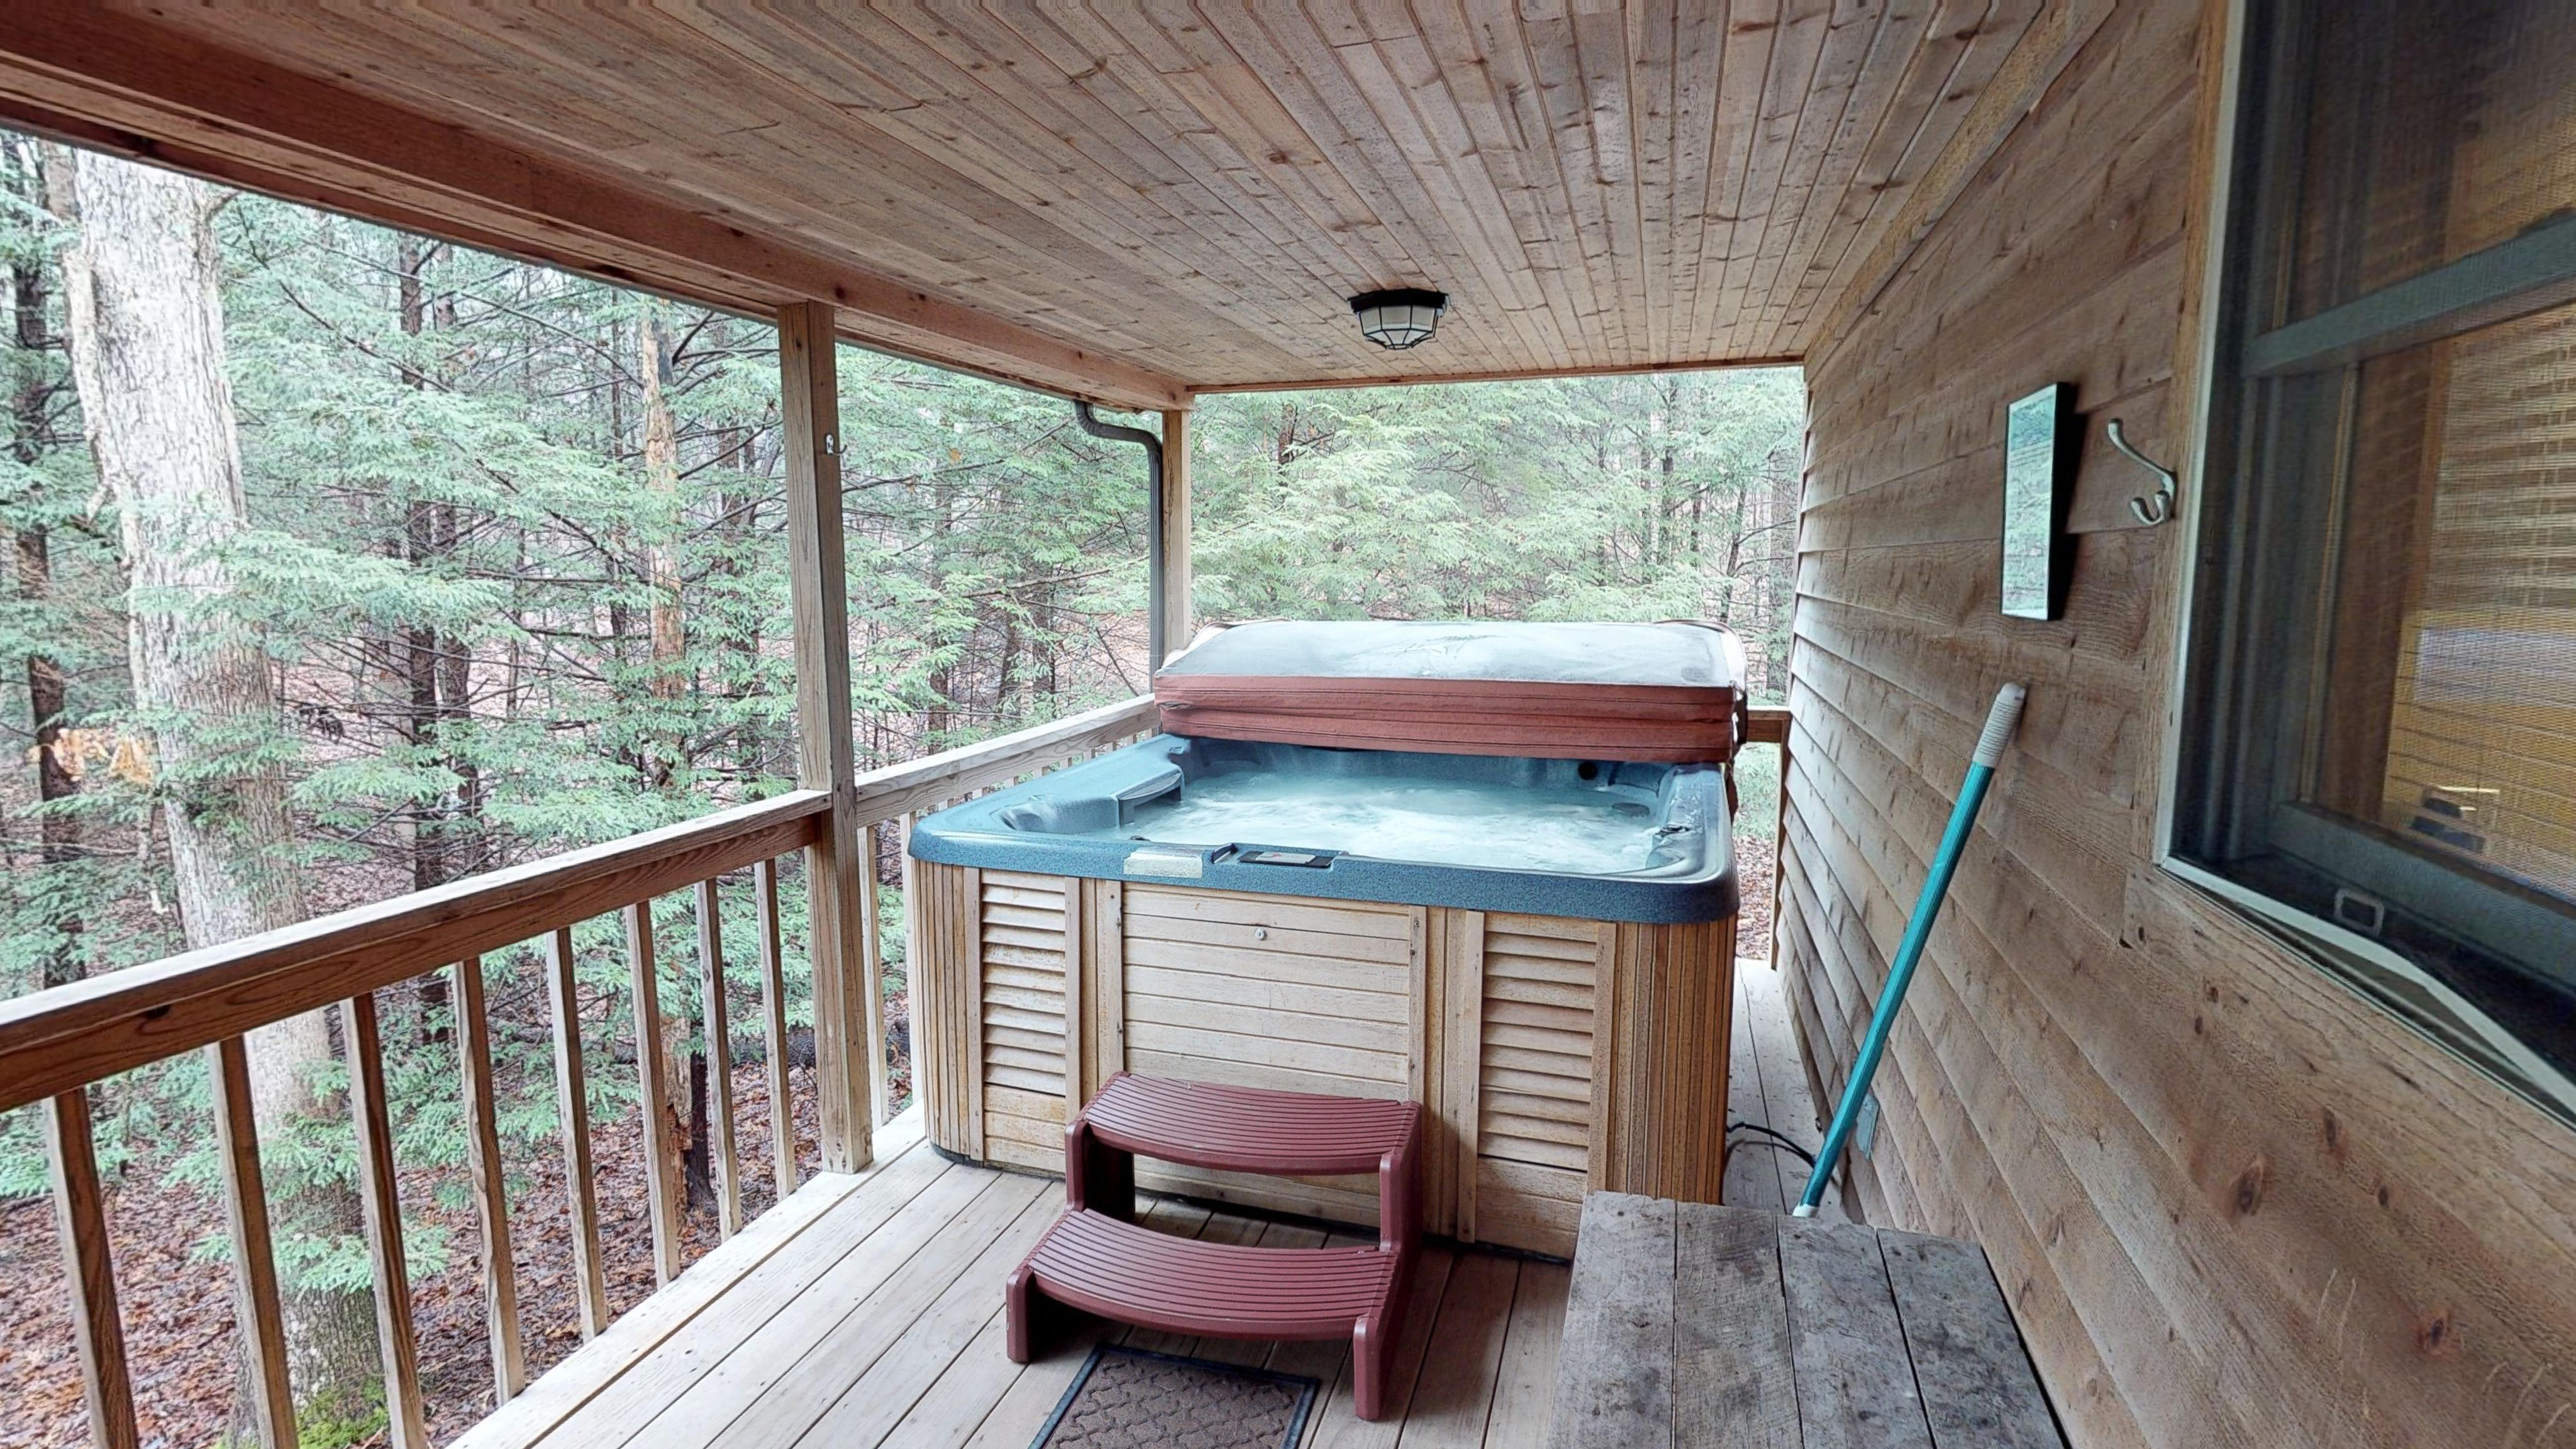 Photo 619_10261.jpg - the hot tub is located on the raised back deck and is completely secluded.  your view is of the woods surrounding you.